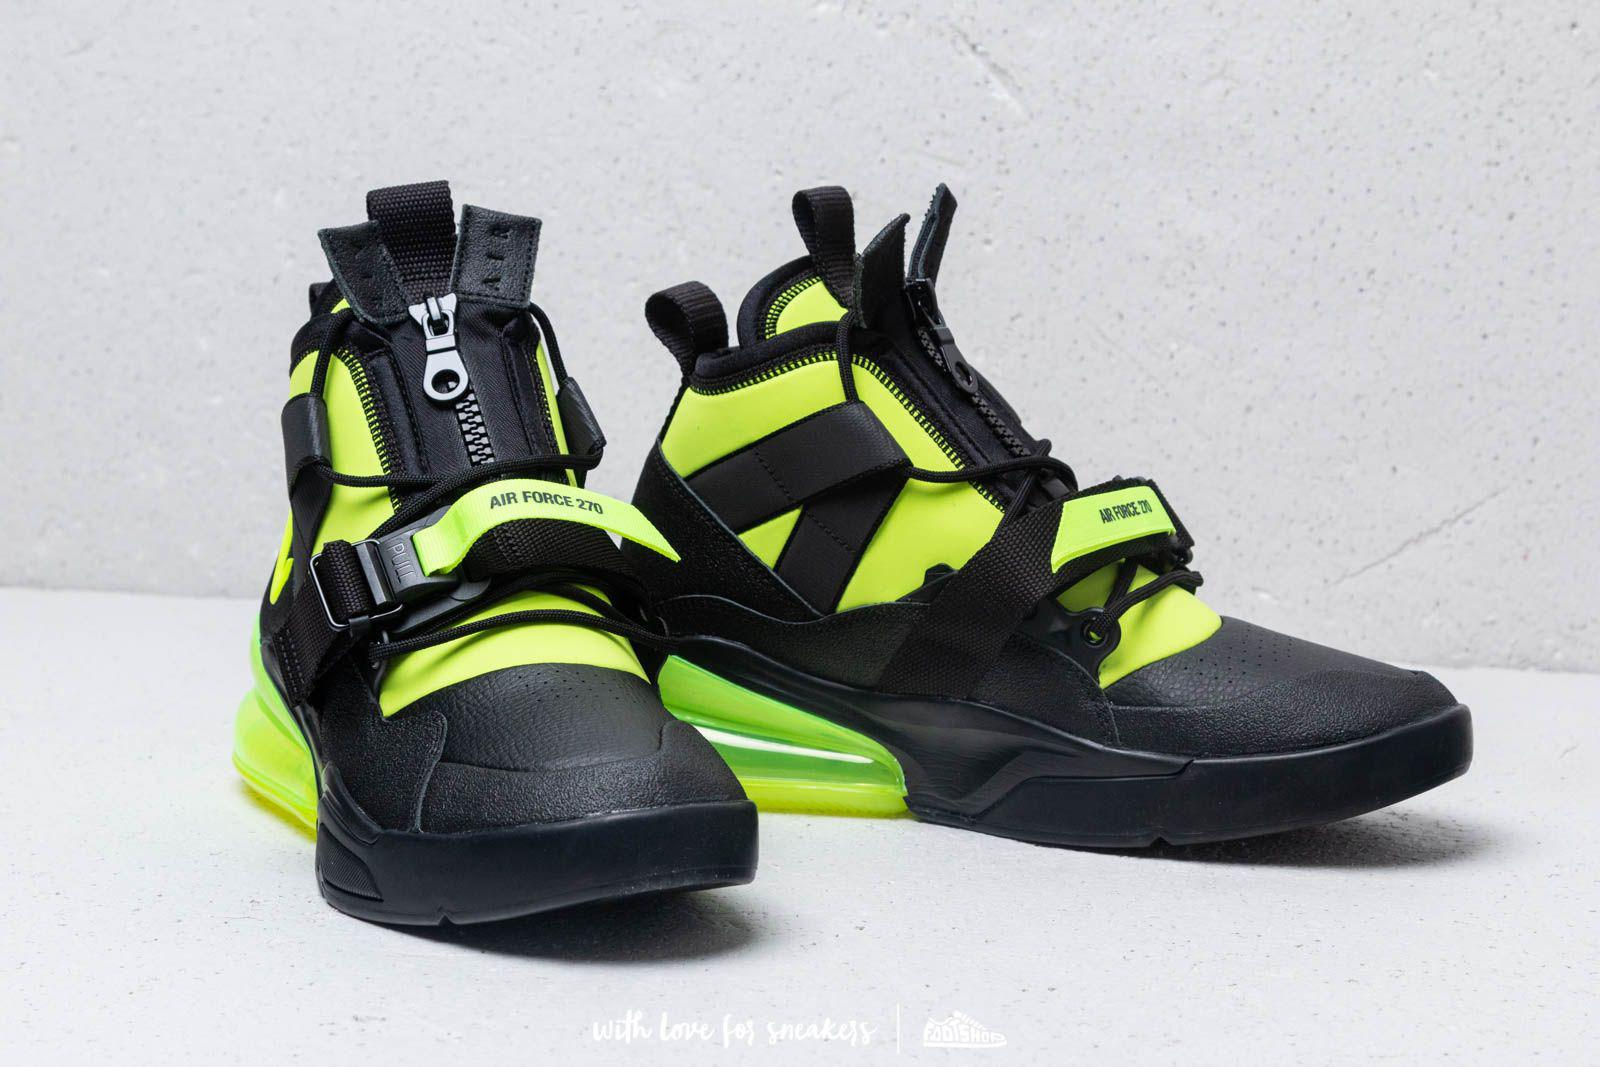 Air Force 270 Utility Shoes - Size